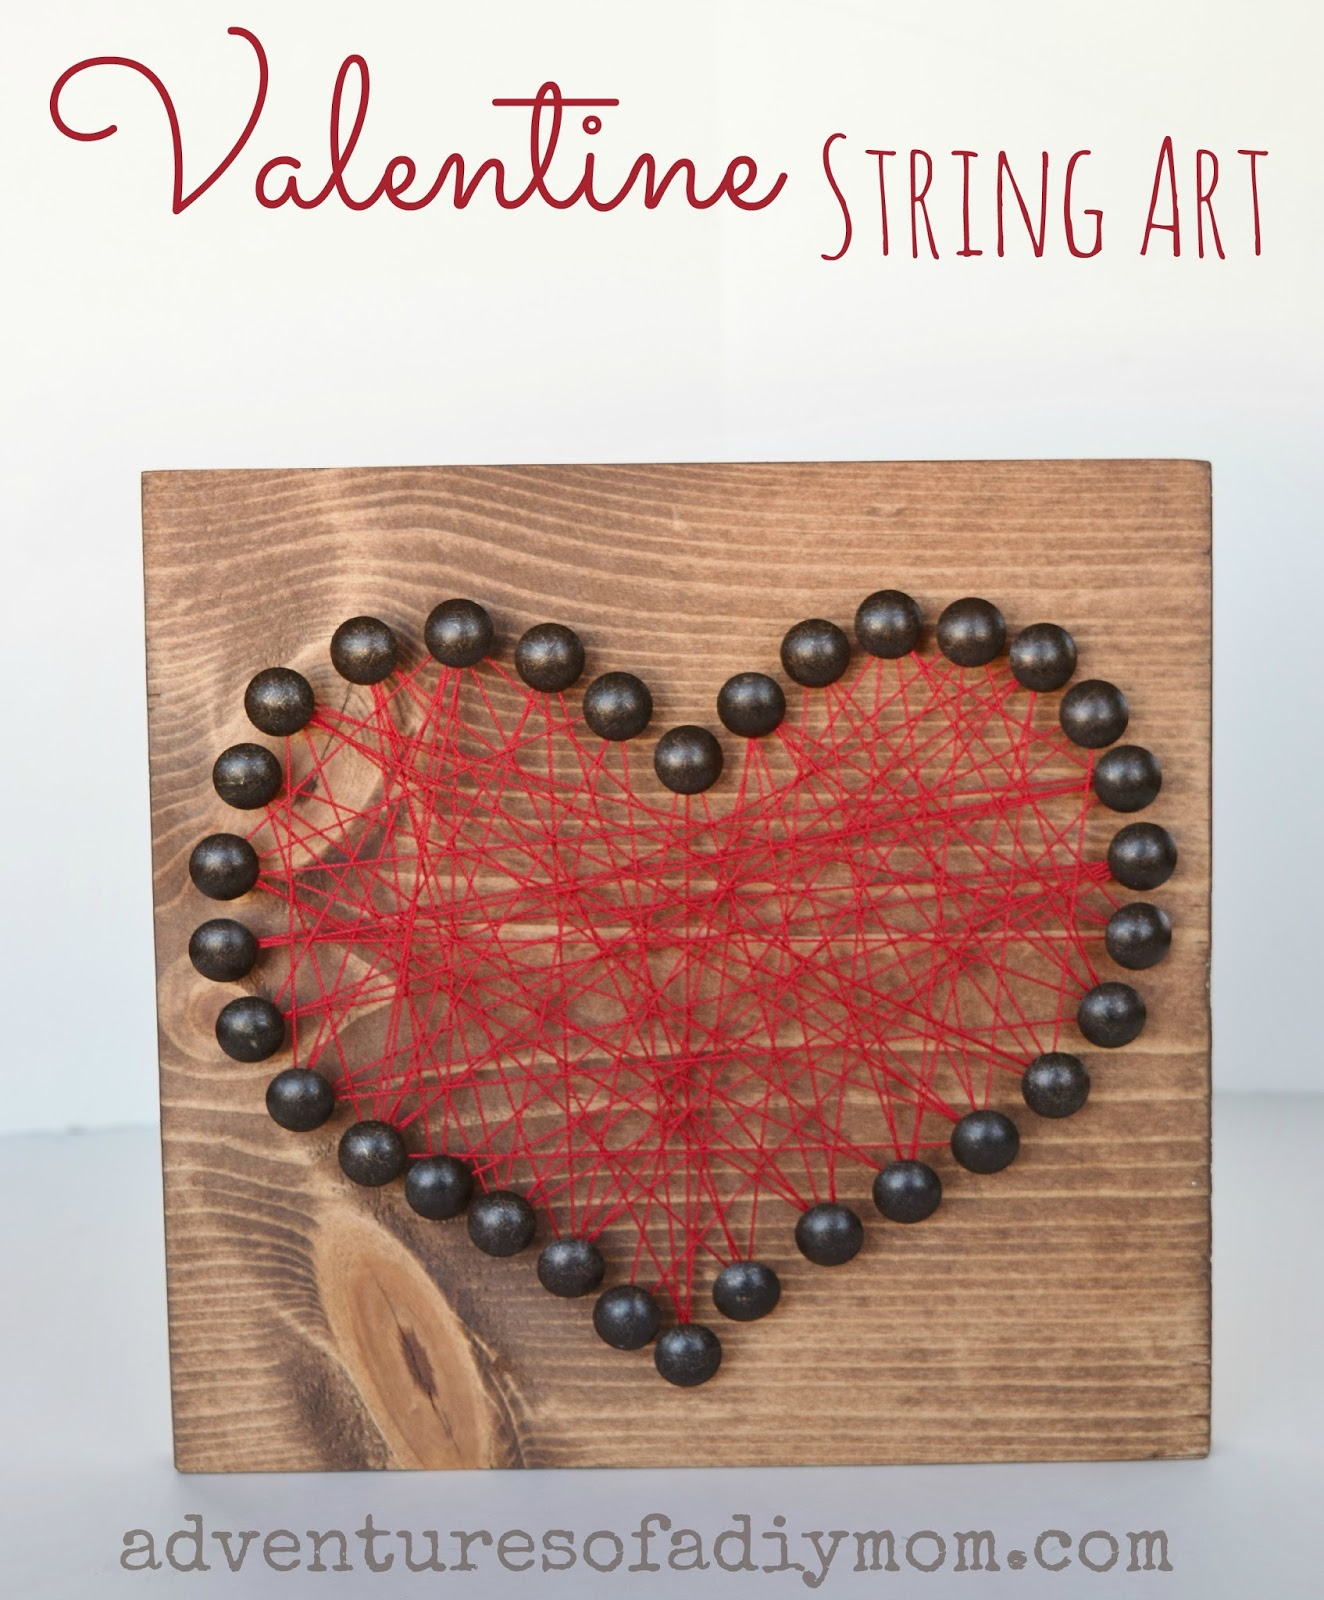 How to Make Valentines Heart String Art with Upholstery Nails